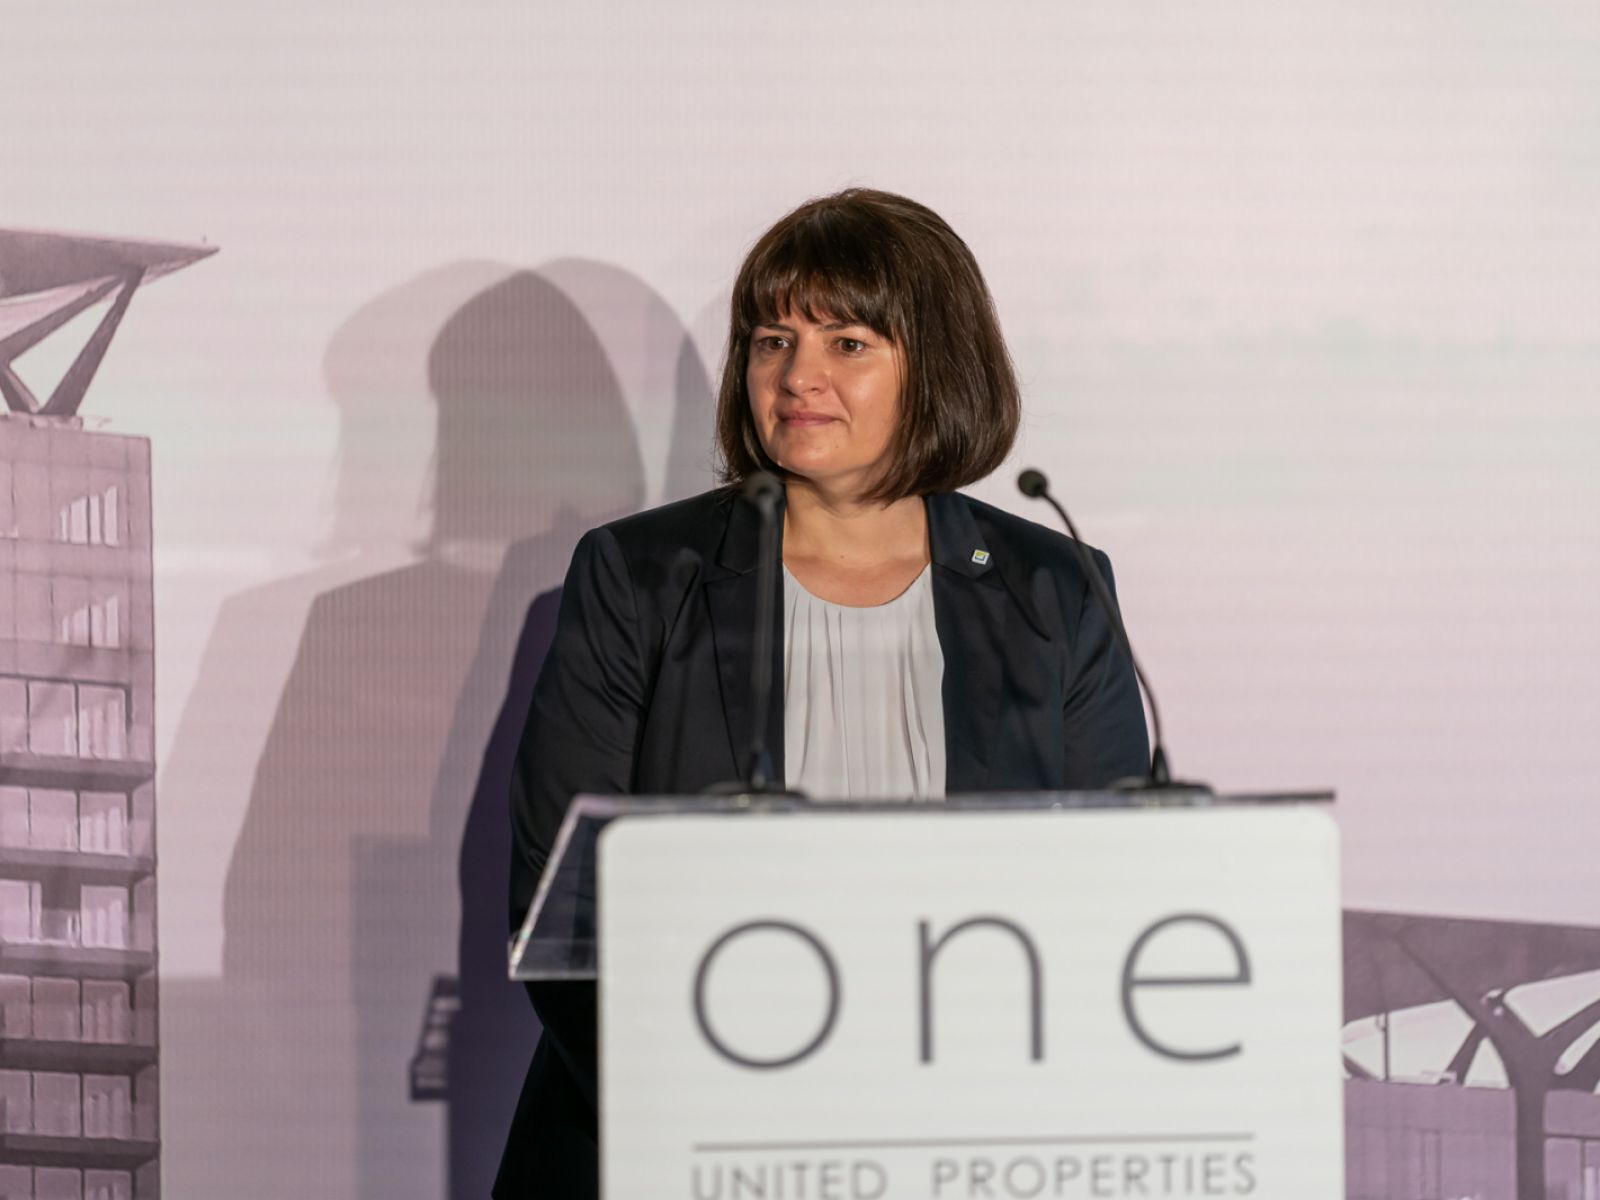 One United Properties concludes a Market Maker contract with BRK Financial Group to increase liquidity